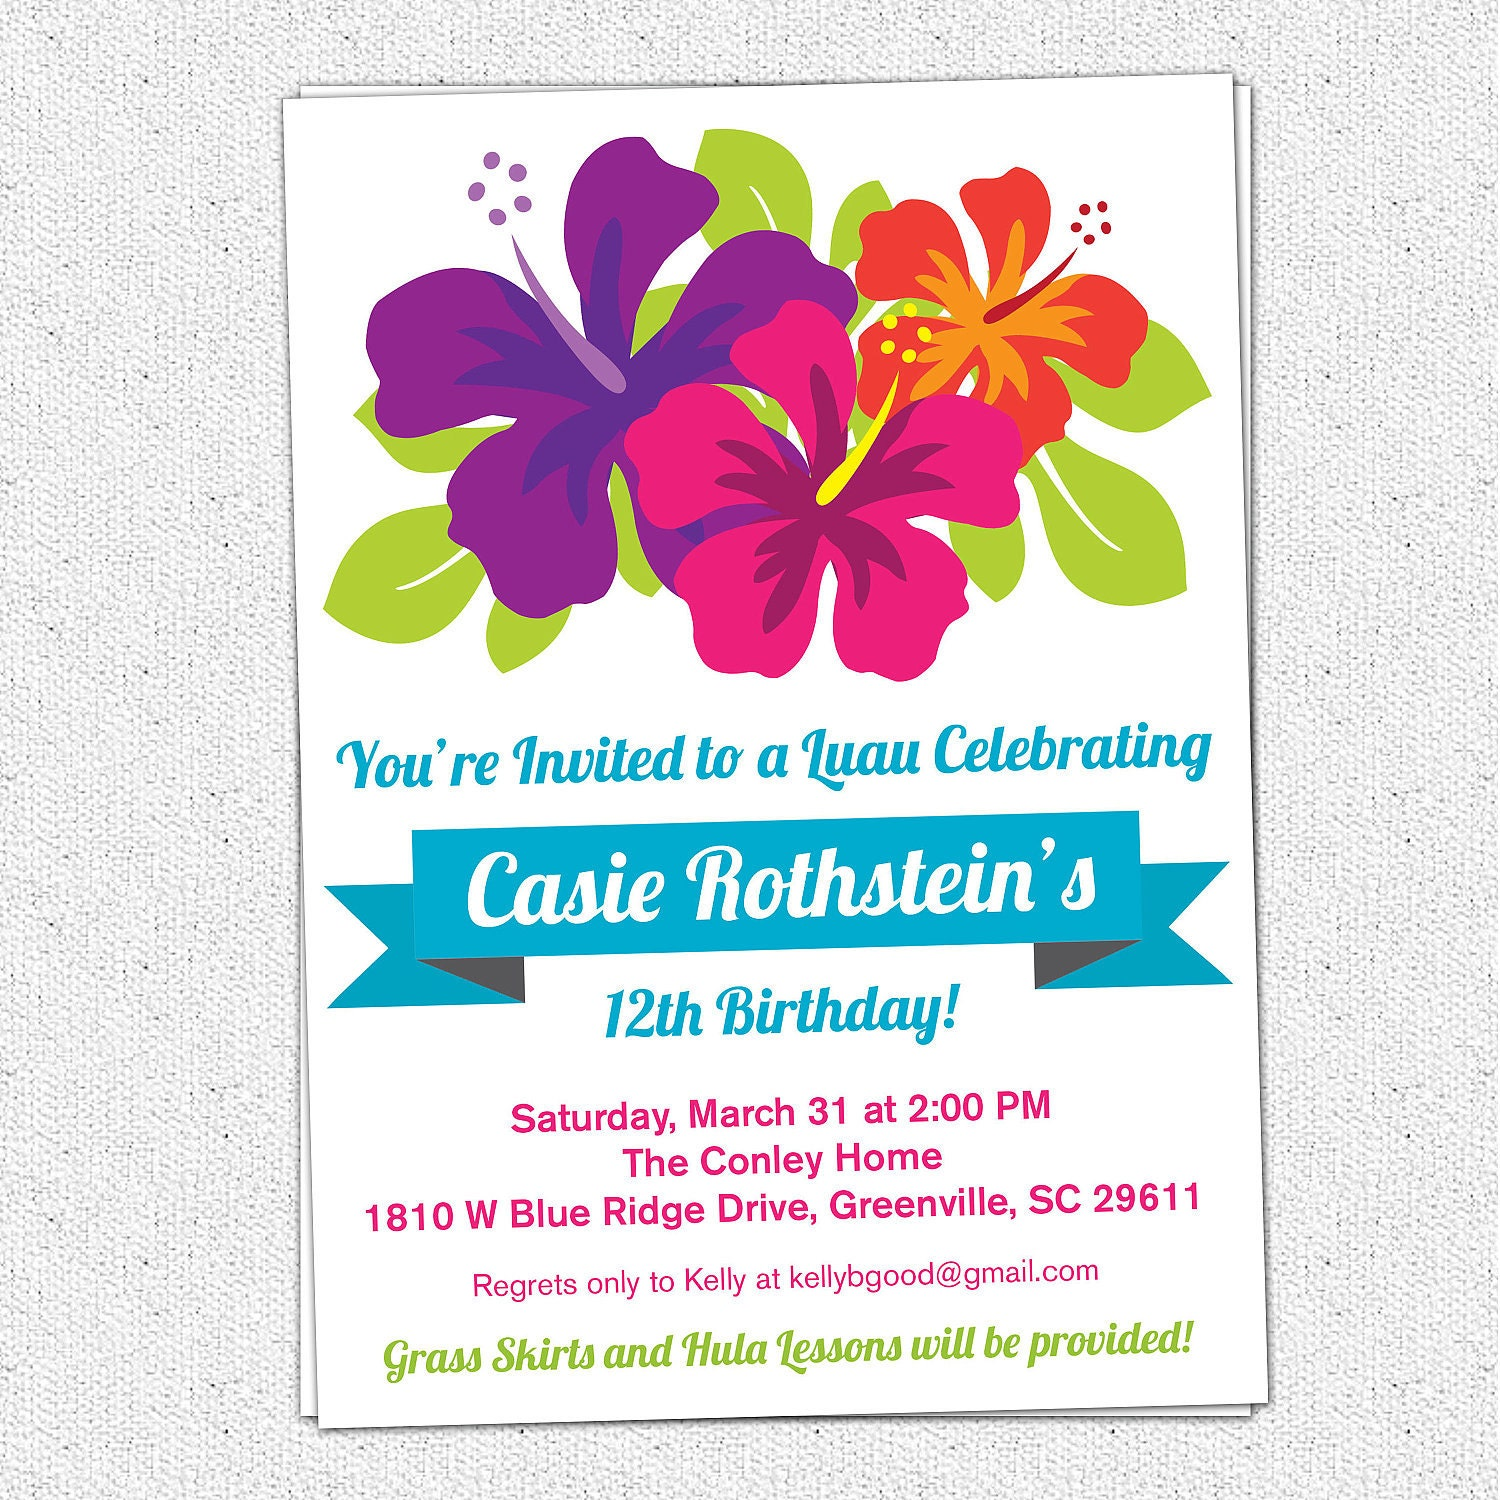 Luau Birthday Party Invitations and get inspiration to create nice invitation ideas